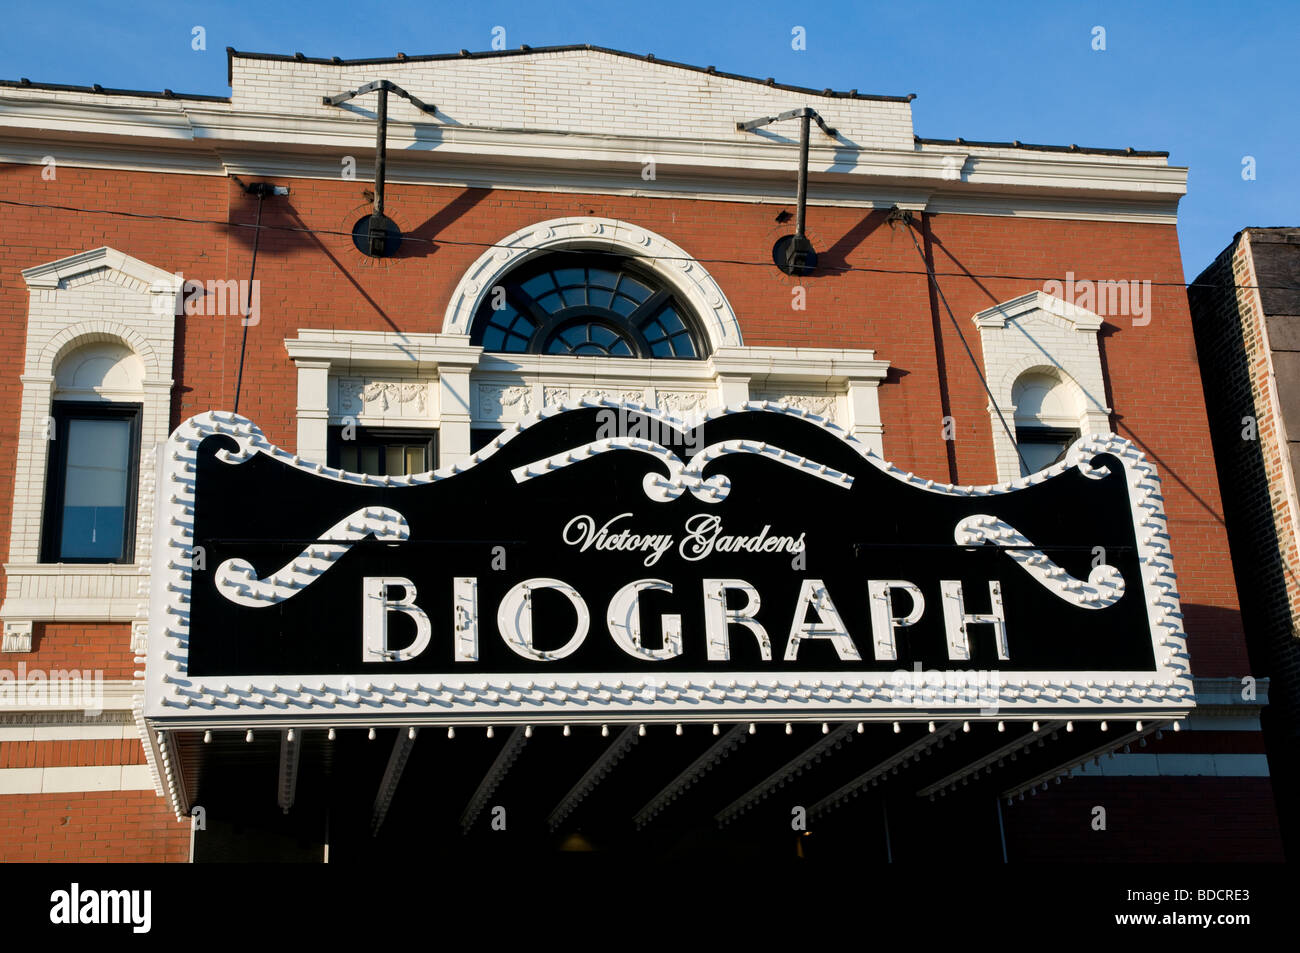 The Biograph Theater, the location where bank robber John Dillinger was shot by the FBI, led by Melvin Purvis, on - Stock Image